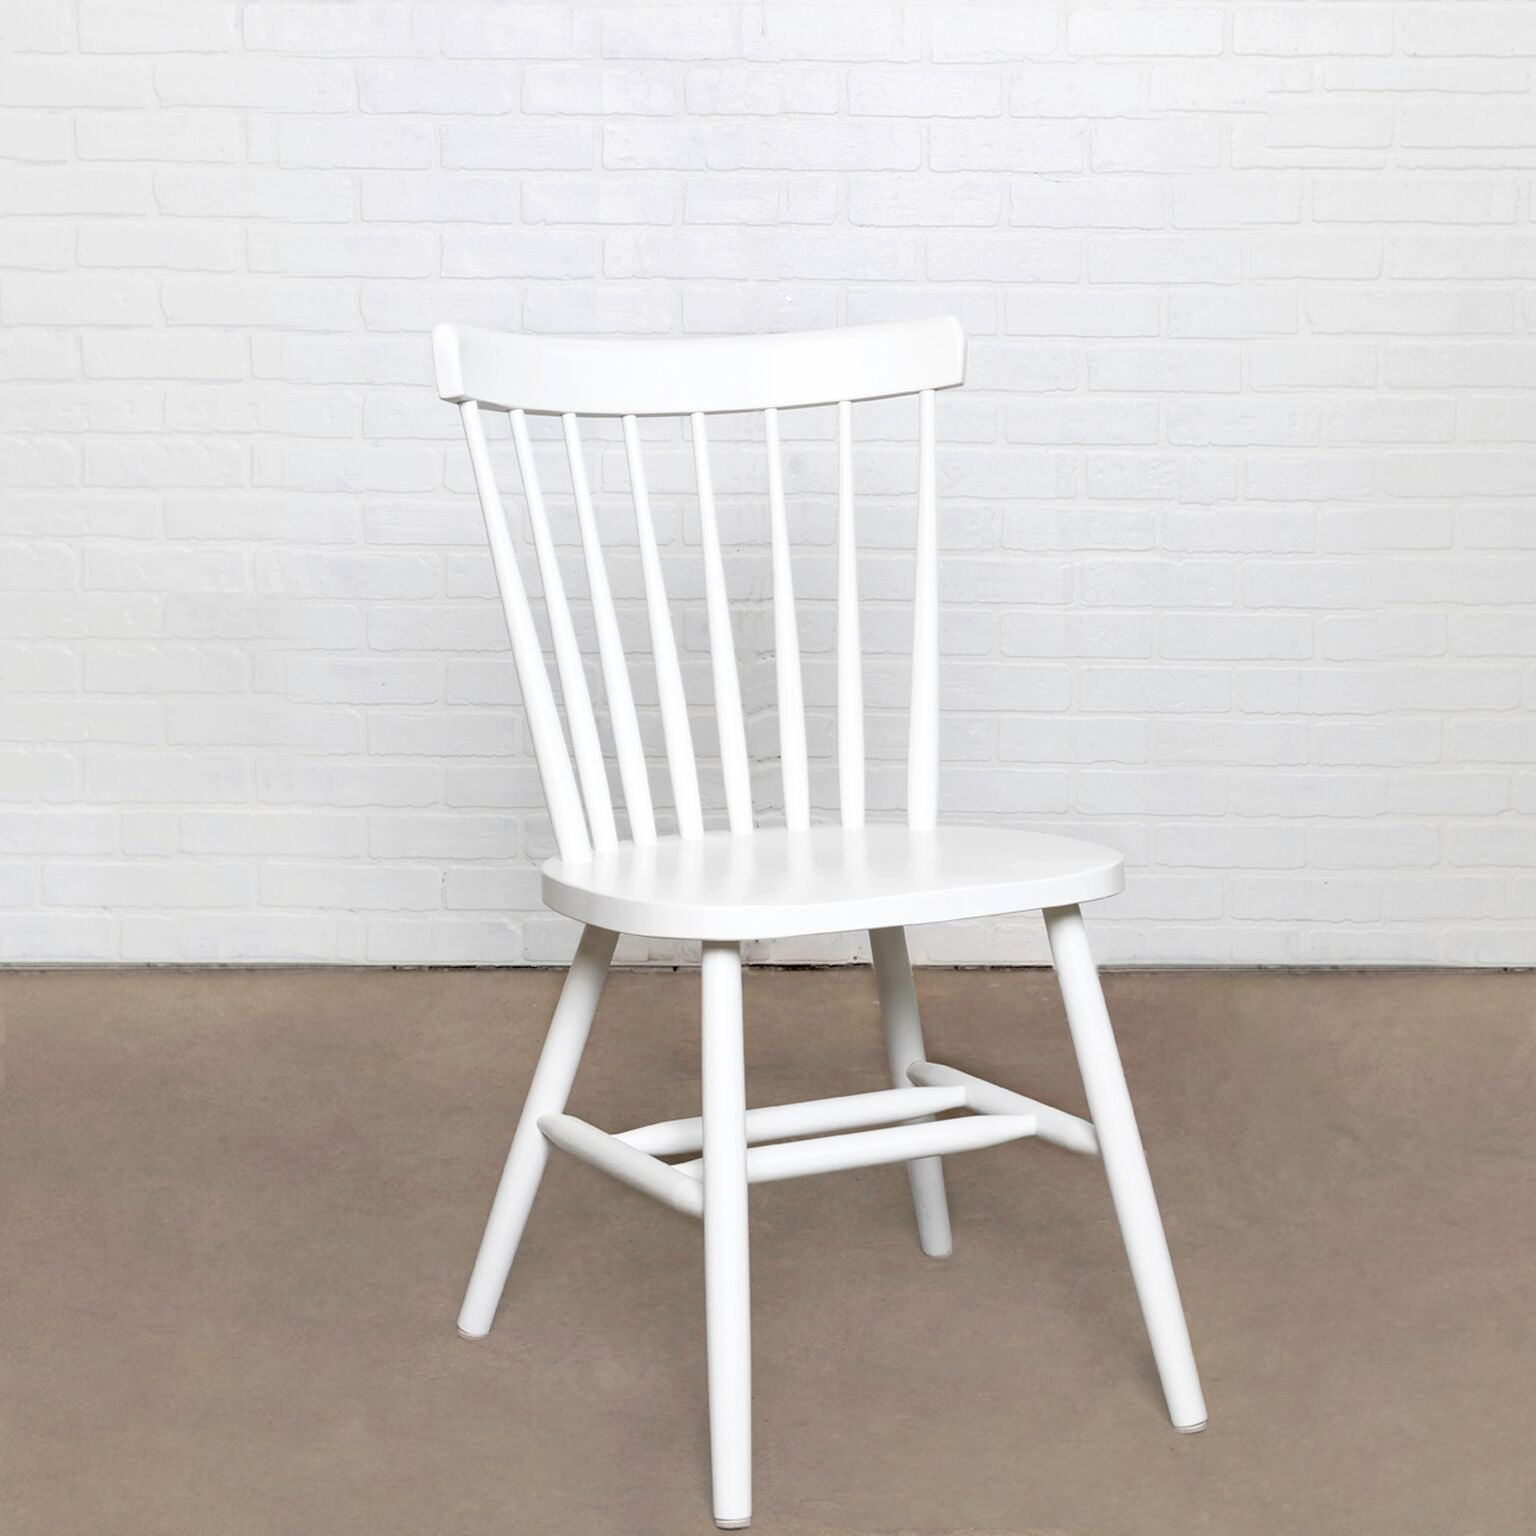 Seating | The Oslo Chair | WW SKU: 285	  and KK SKU: OSL-DC-1, Width: 17.5, Depth: 35, Height: 16, Weight: 16 | Wood | Wood |